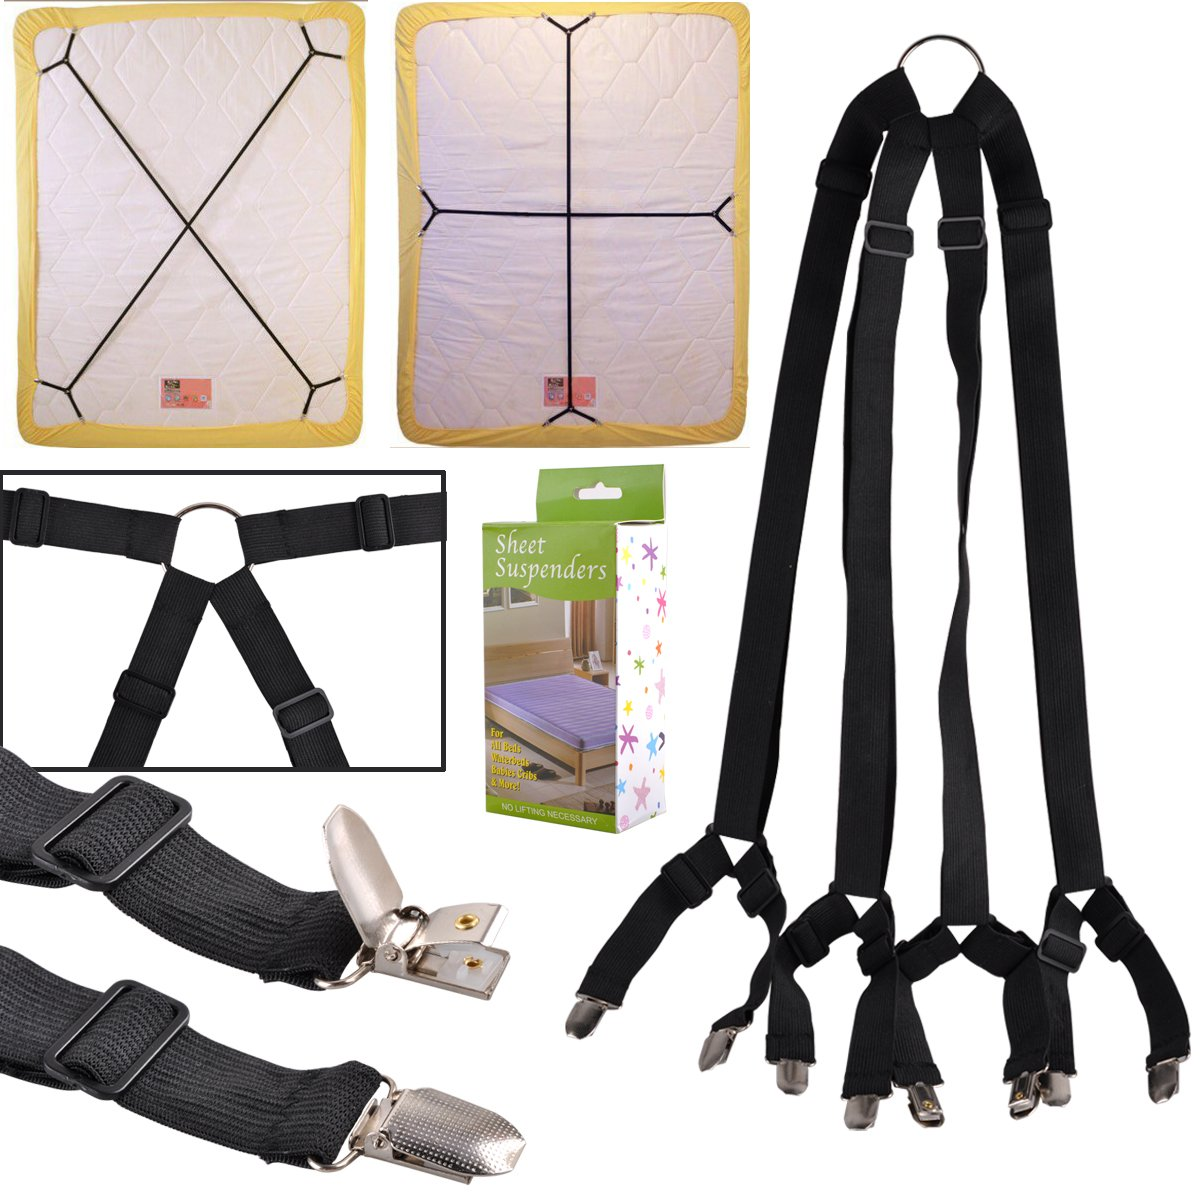 eZAKKA One Set Long Crisscross Adjustable Fitted Bed Matress Sheet Straps Suspenders Grippers Bands Fasteners COMIN18JU071091